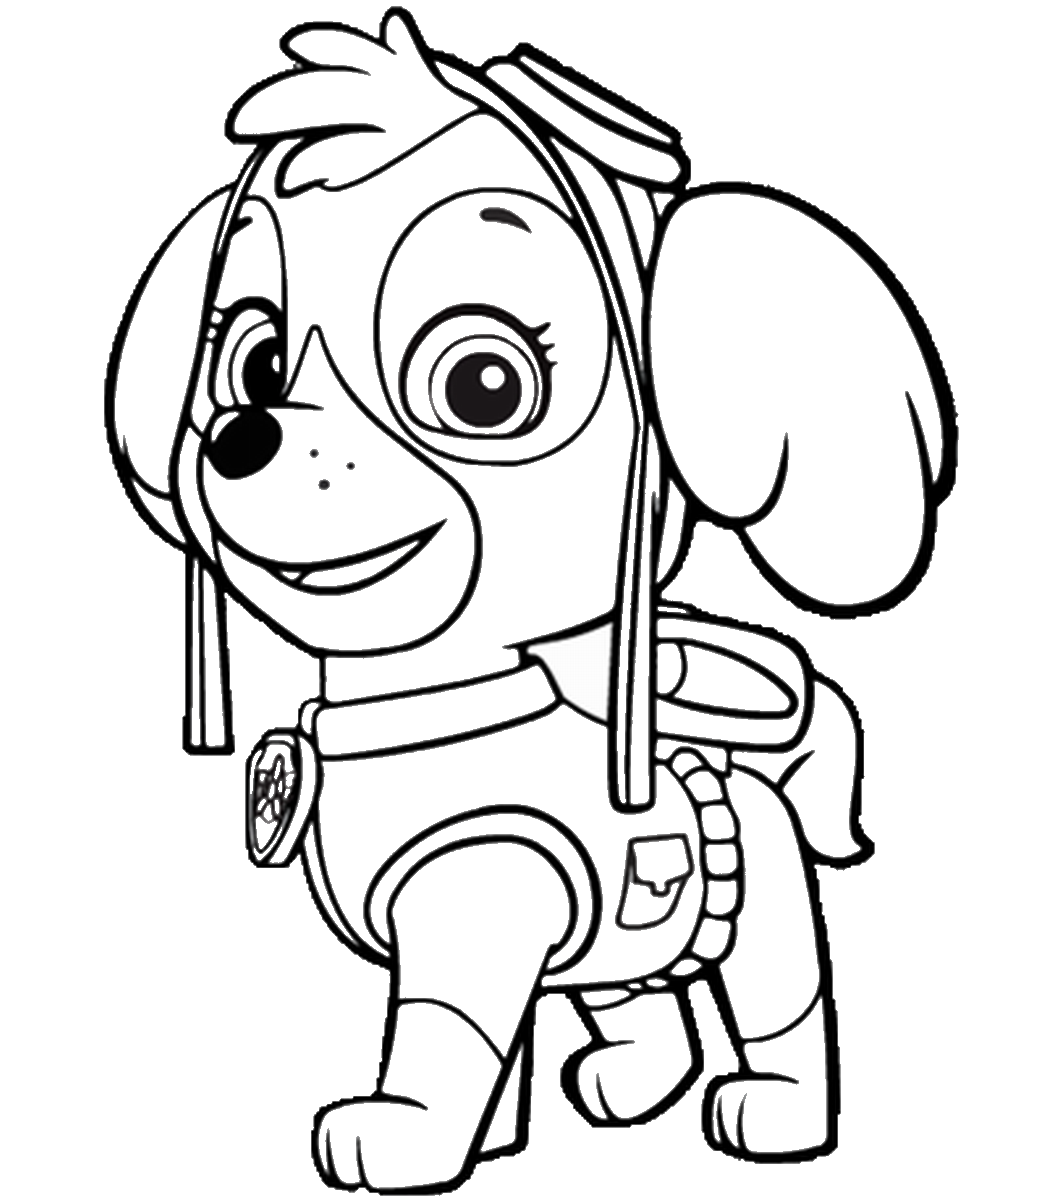 photo regarding Printable Paw Patrol Coloring Pages named Paw Patrol Coloring Internet pages - Ideal Coloring Webpages For Young children